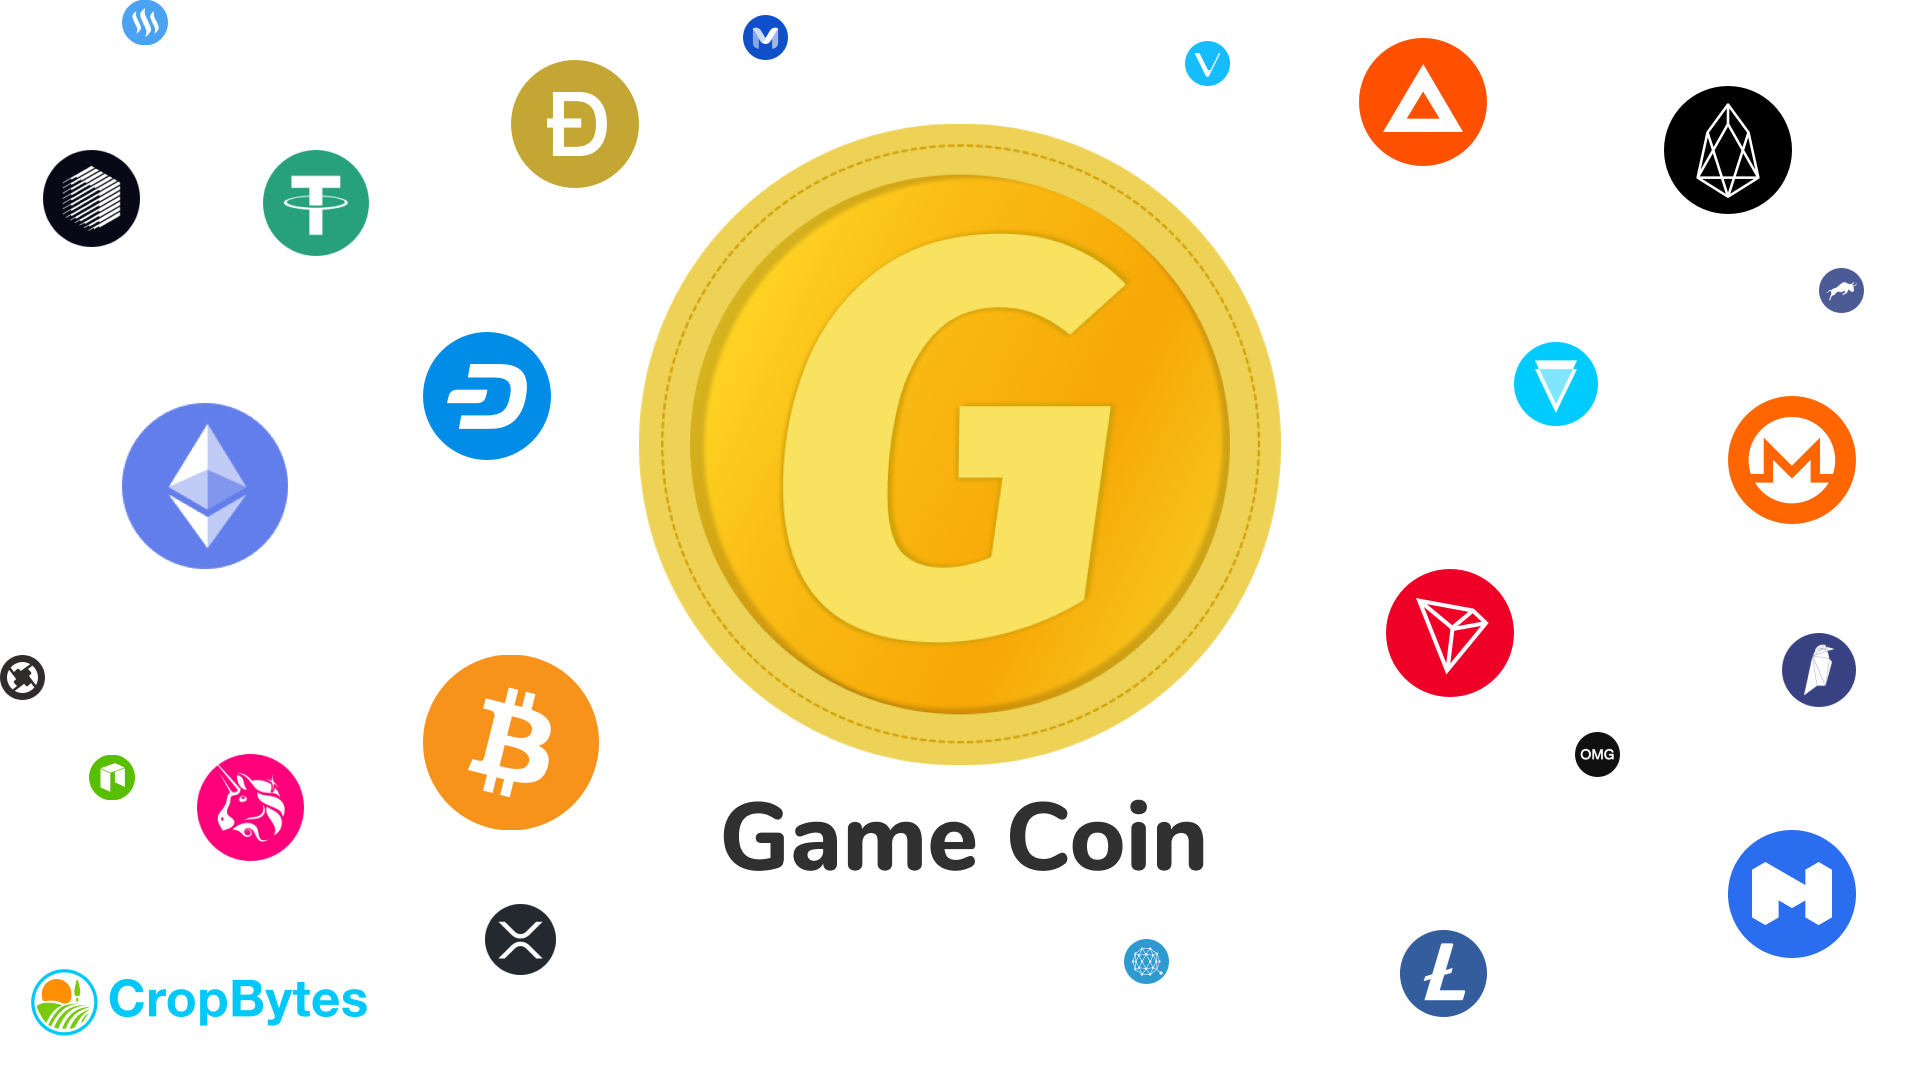 Game Coins are crypto tokens like bitcoin,ethereum,tron,etc